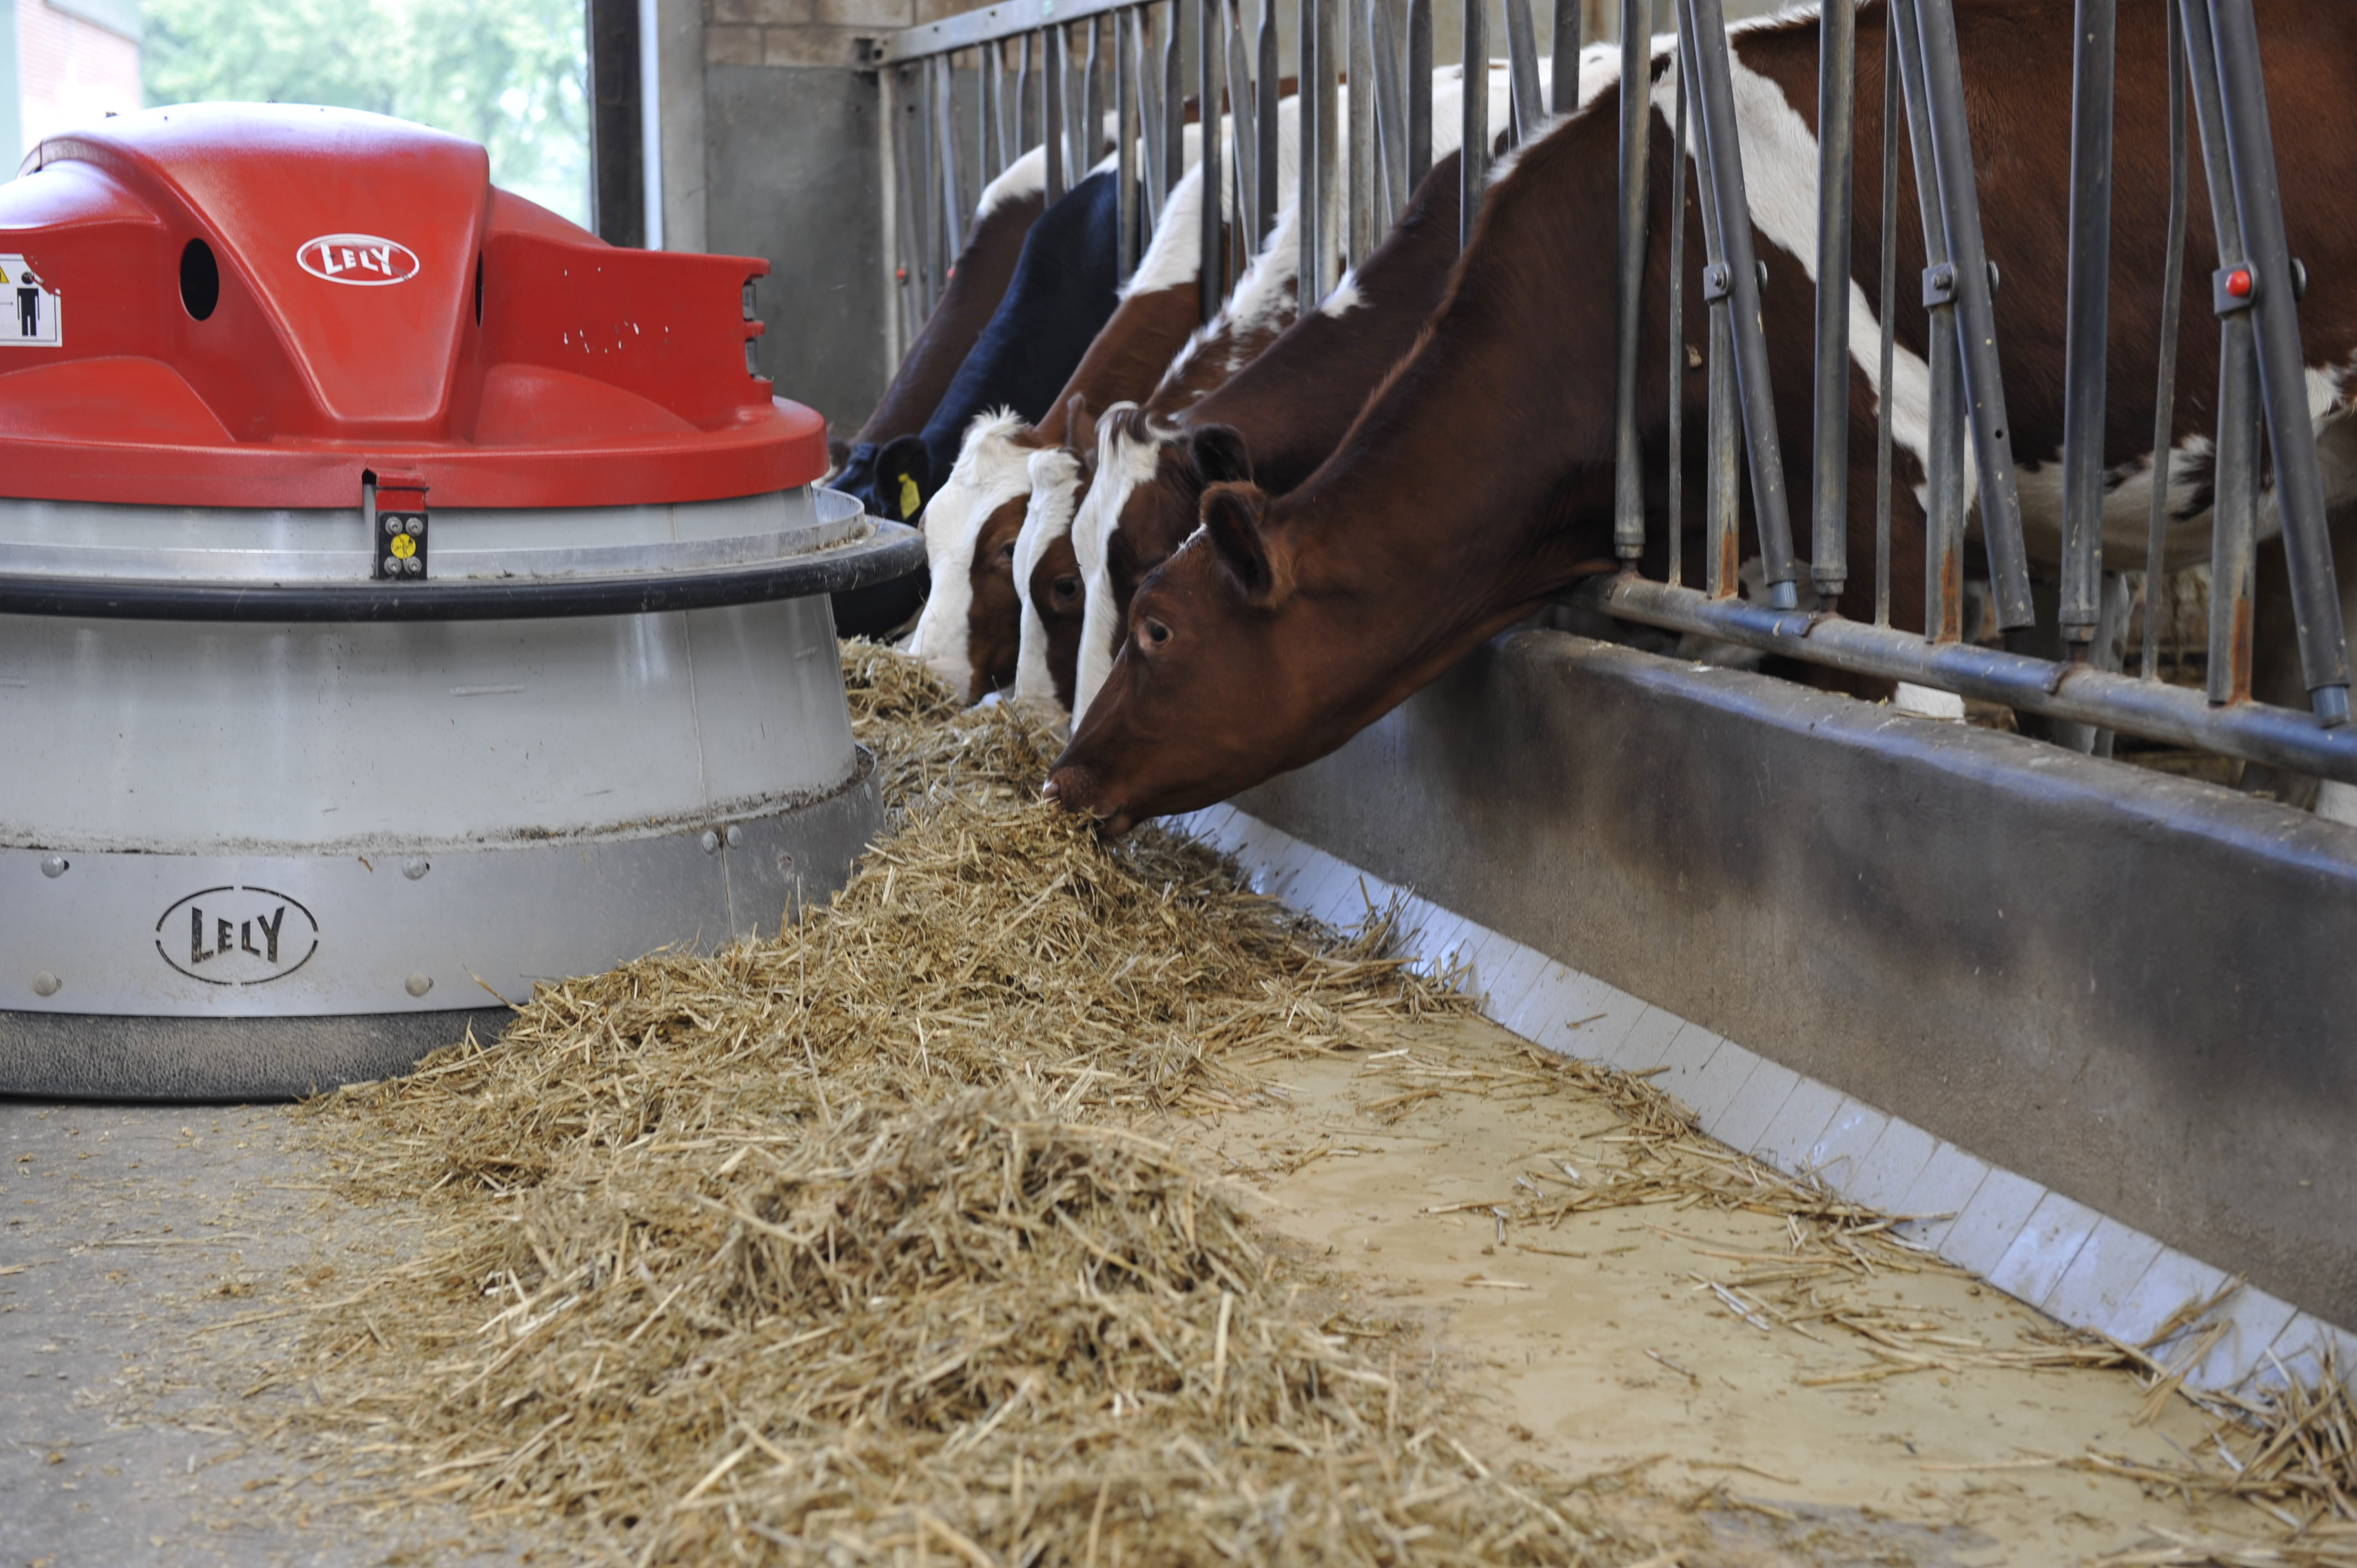 The Lely Juno automatic feed pusher keeps fresh feed in front of your cows 24/7